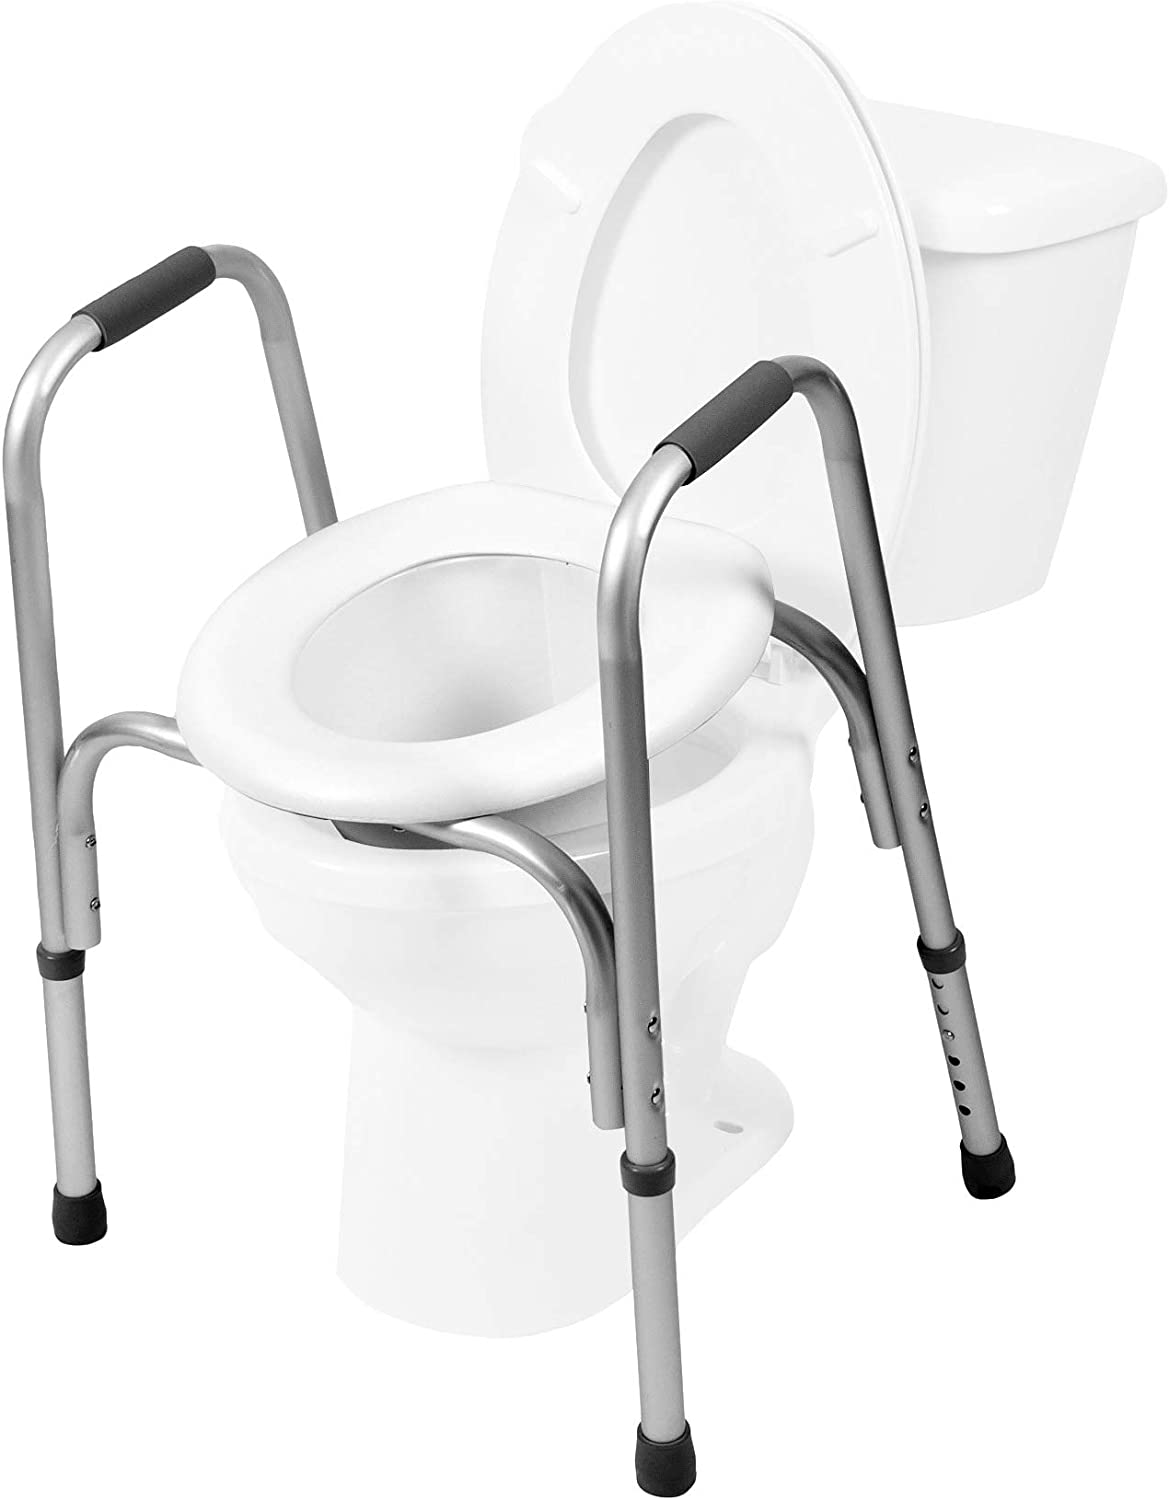 Amazon.com: PCP Raised Toilet Seat and Safety Frame (Two in One